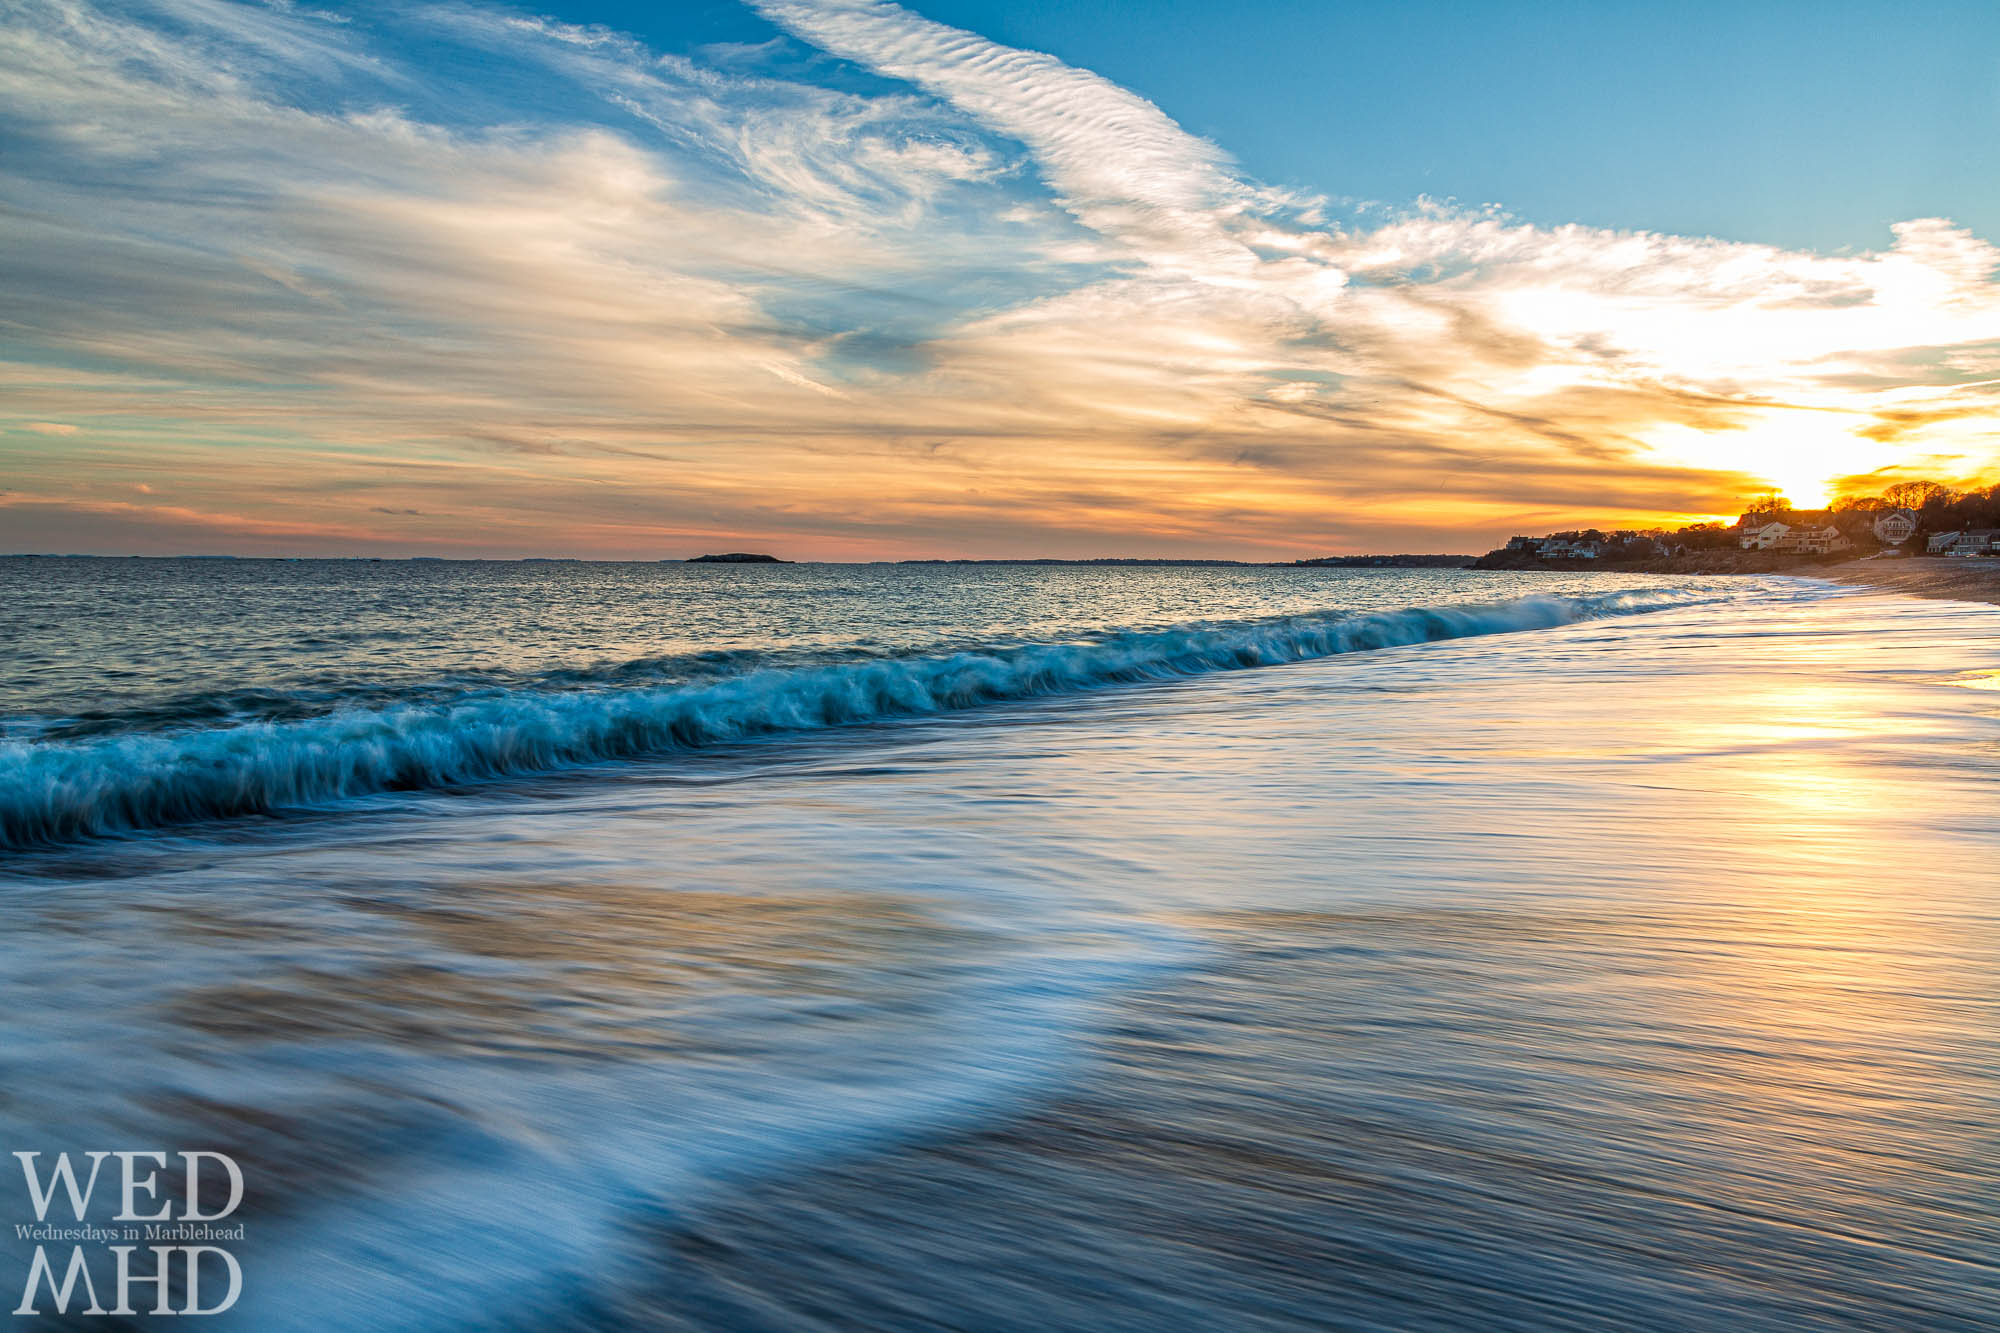 Waves recede from shore and reflect the light of sunset in this long exposure image captured at Devereux Beach